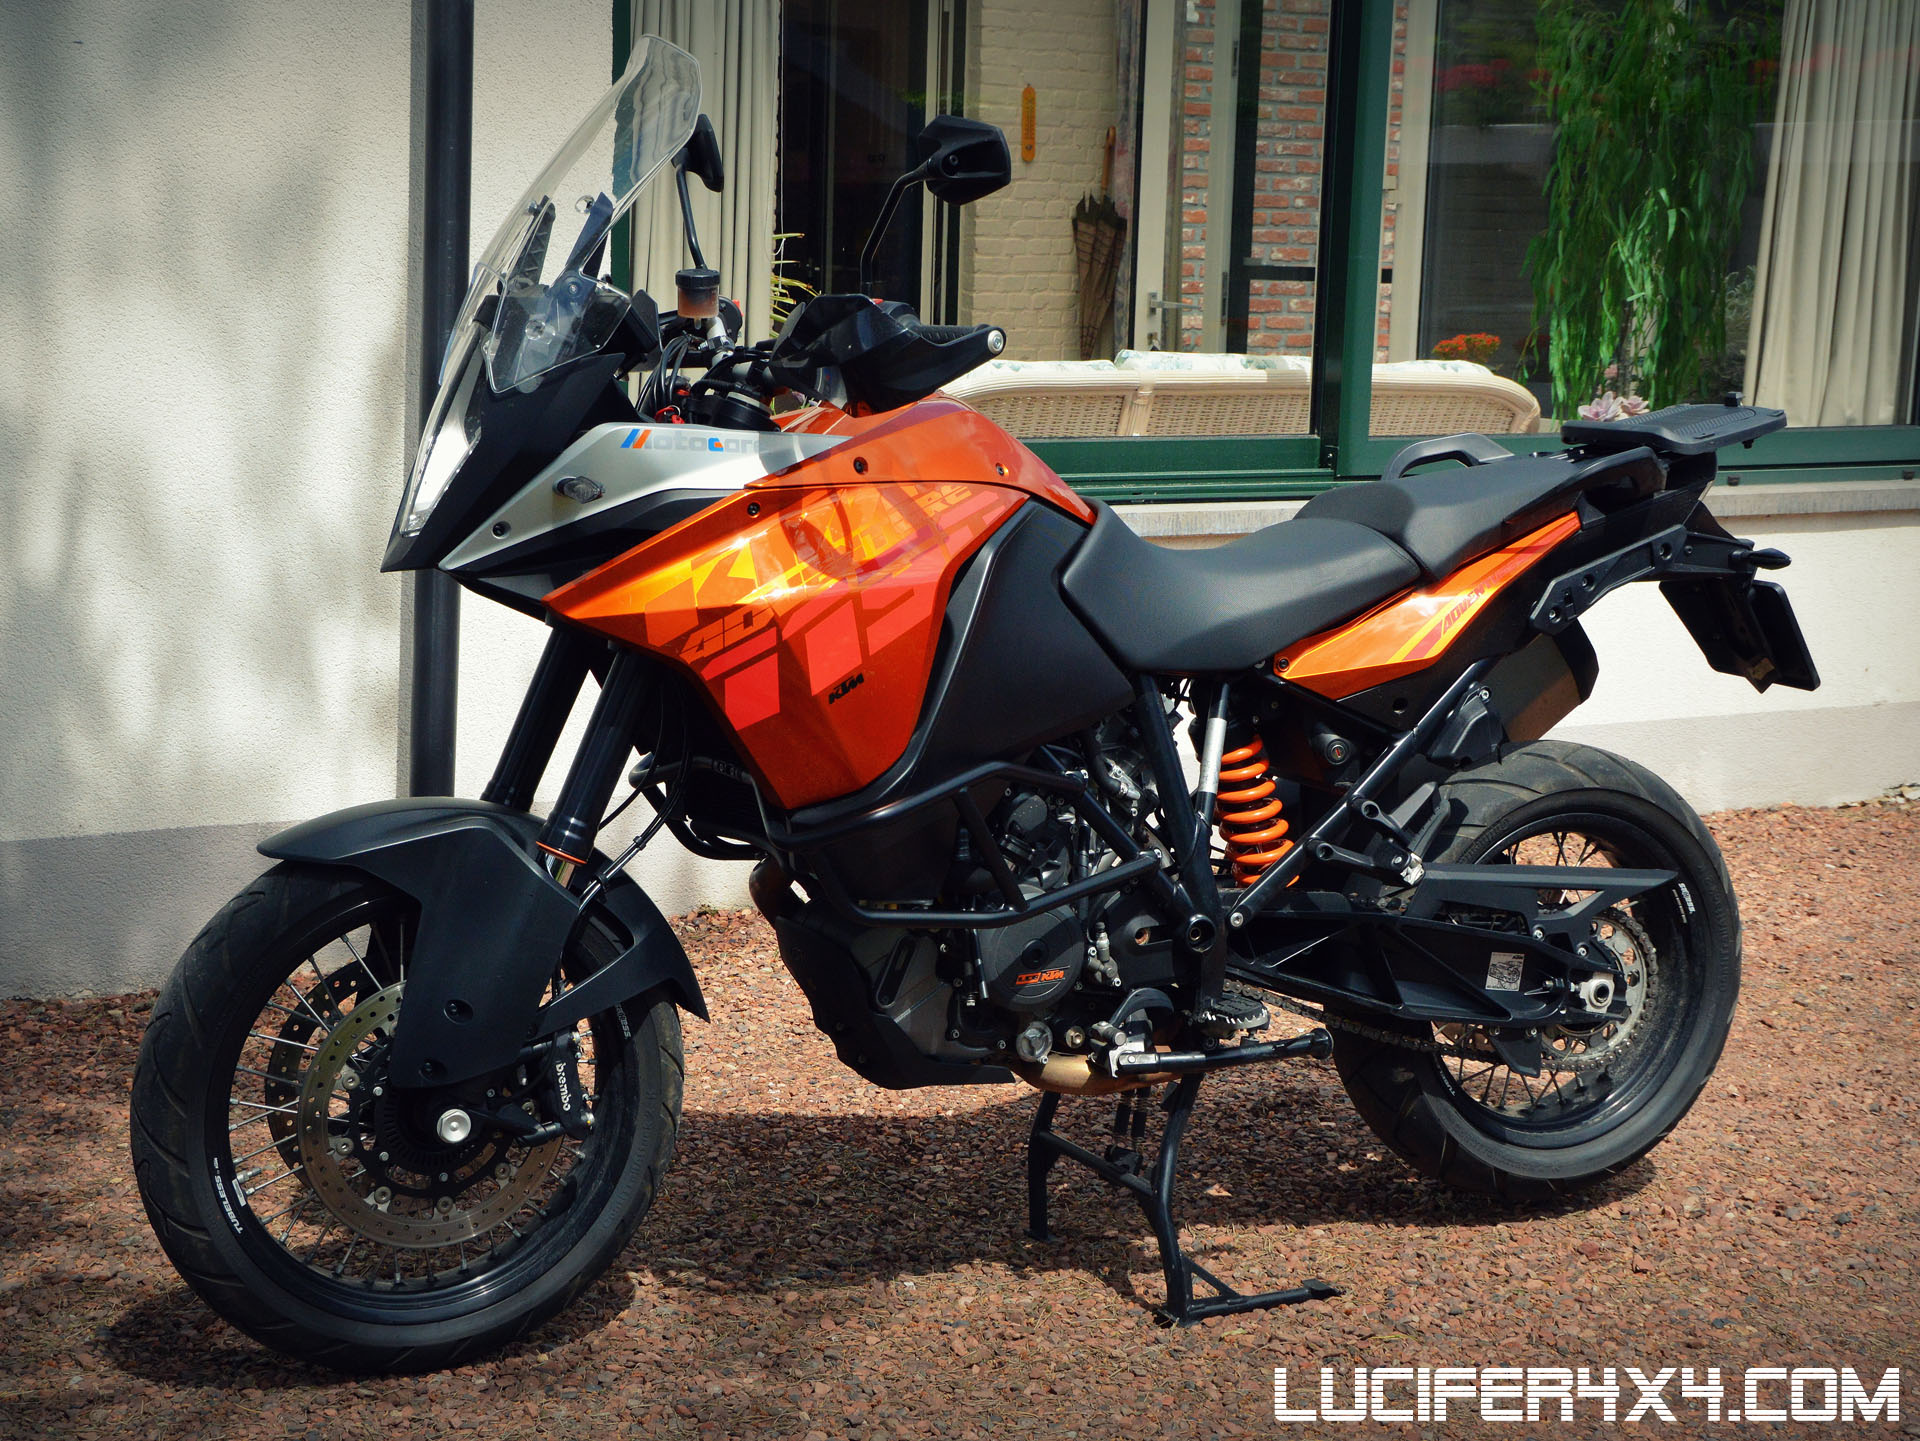 *VIDEO* KTM 1190 Adventure: Test ride!